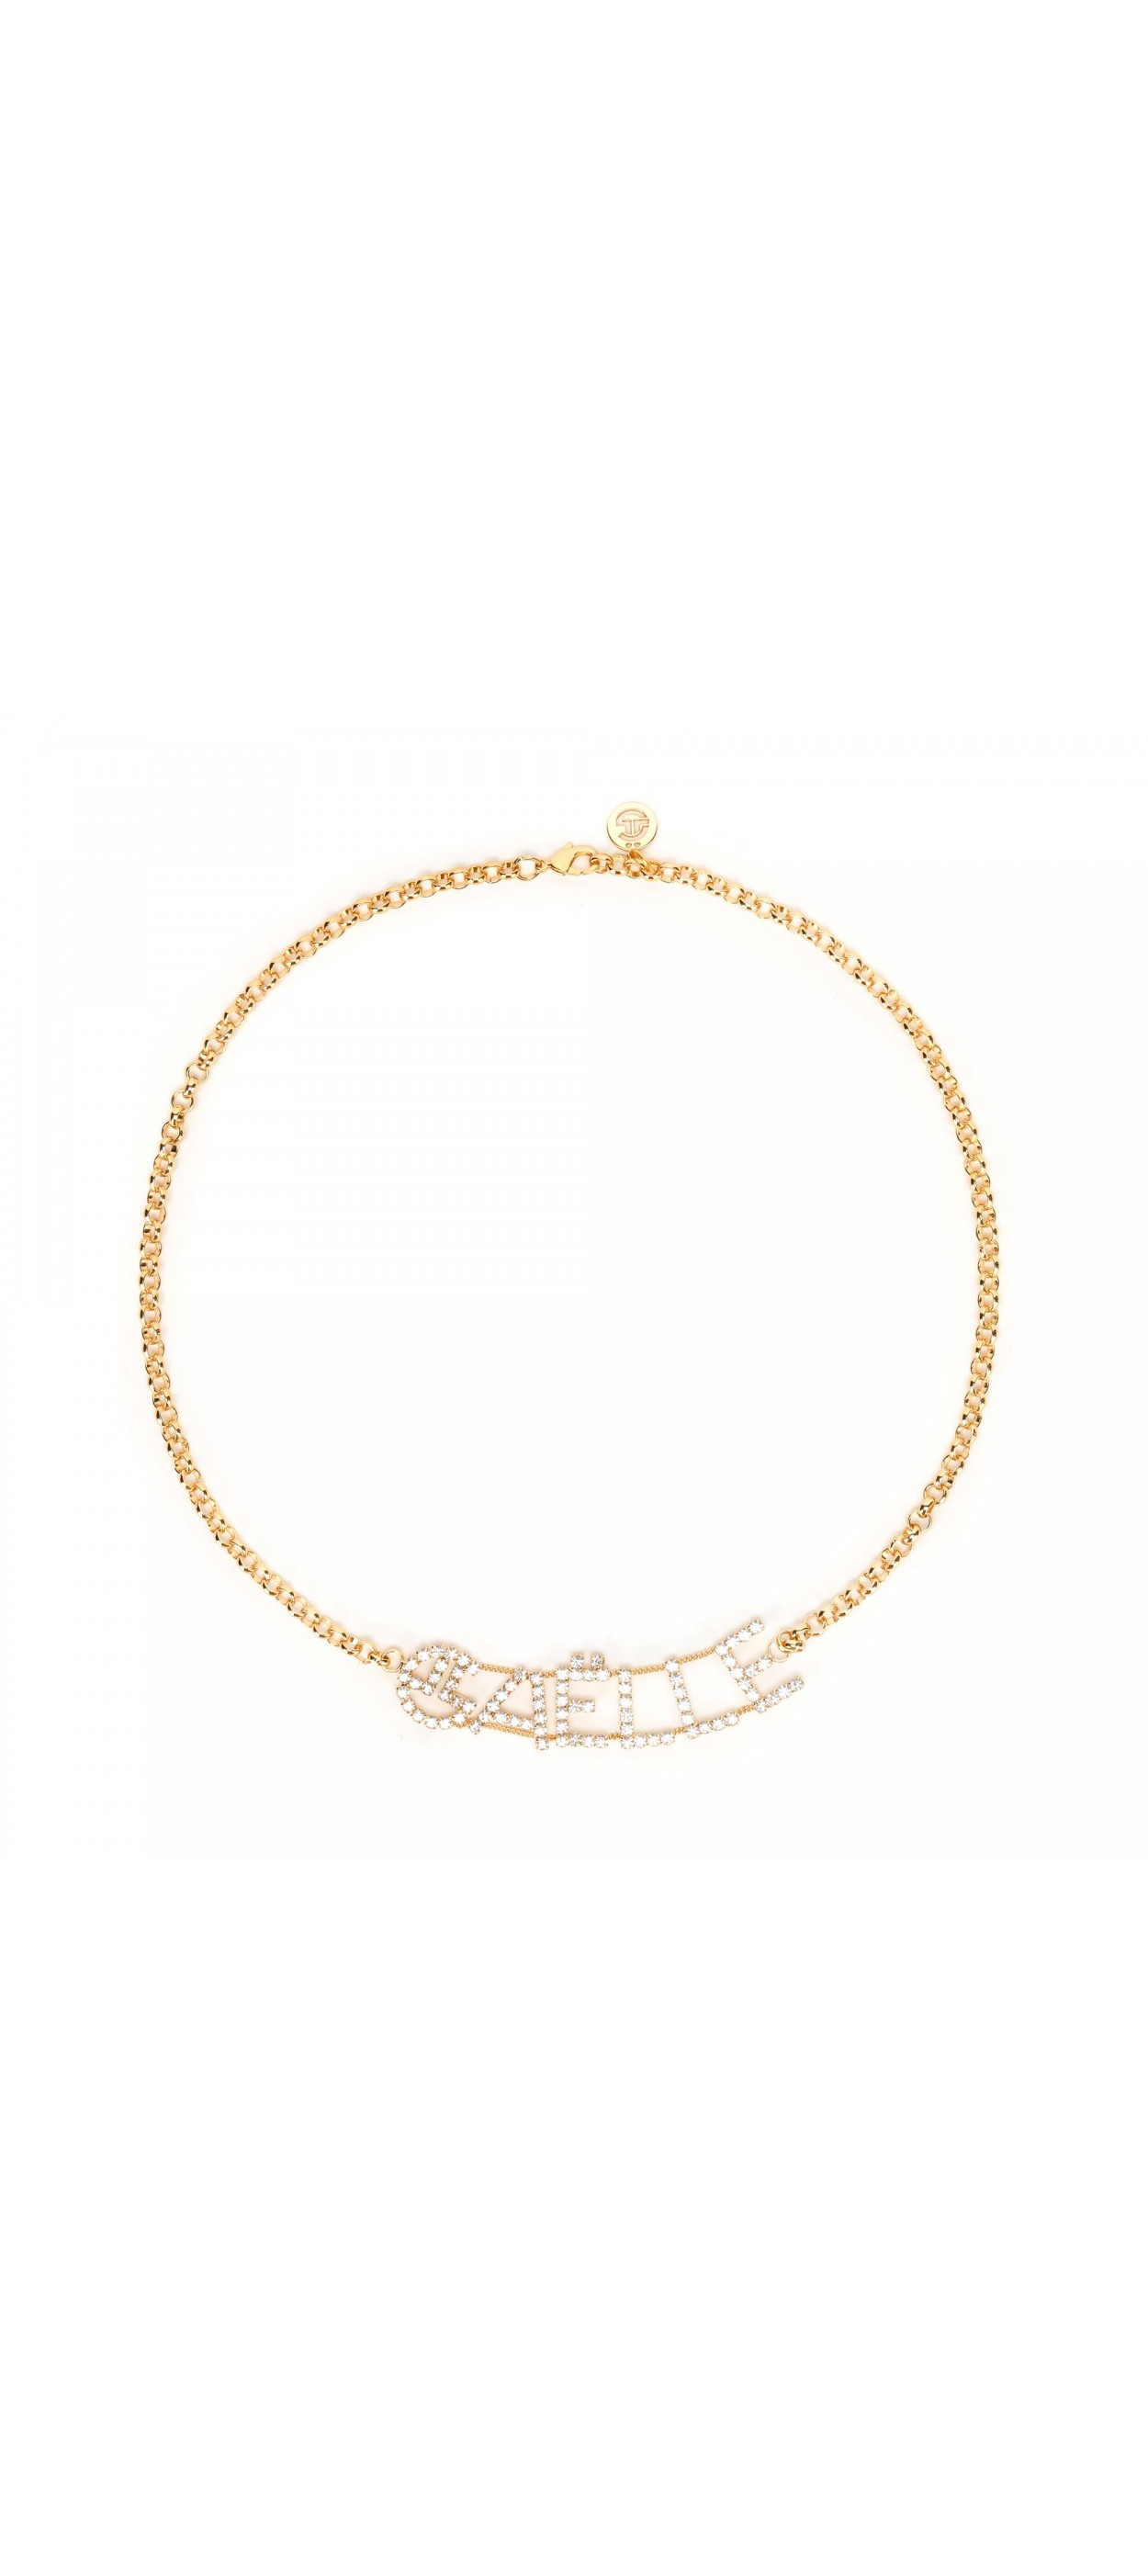 NECKLACE - GBDA2118 - GAELLE PARIS